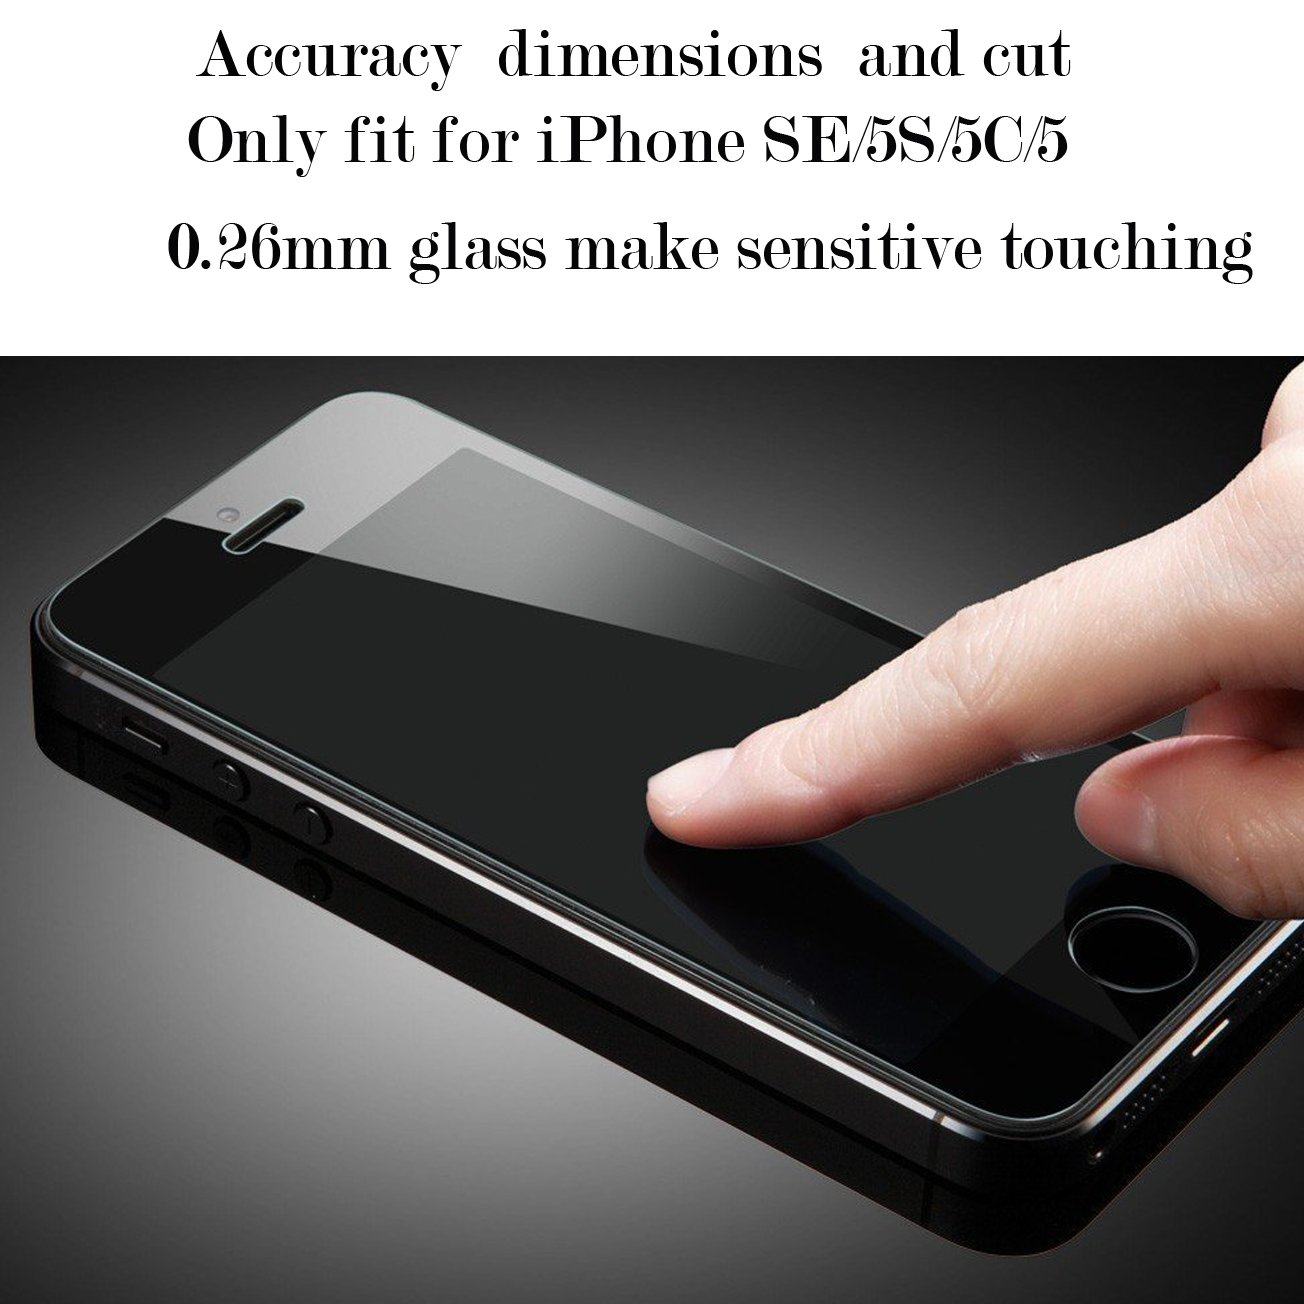 [1-Pack] iPhone 5S/SE/5C/5 Screen Protector,iBarbe iPhone Se Glass Screen Protector,Transparent Tempered Glass Screen Protector Film 9H Hardness(0.26mm HD Ultra Clear) by iBarbe (Image #5)